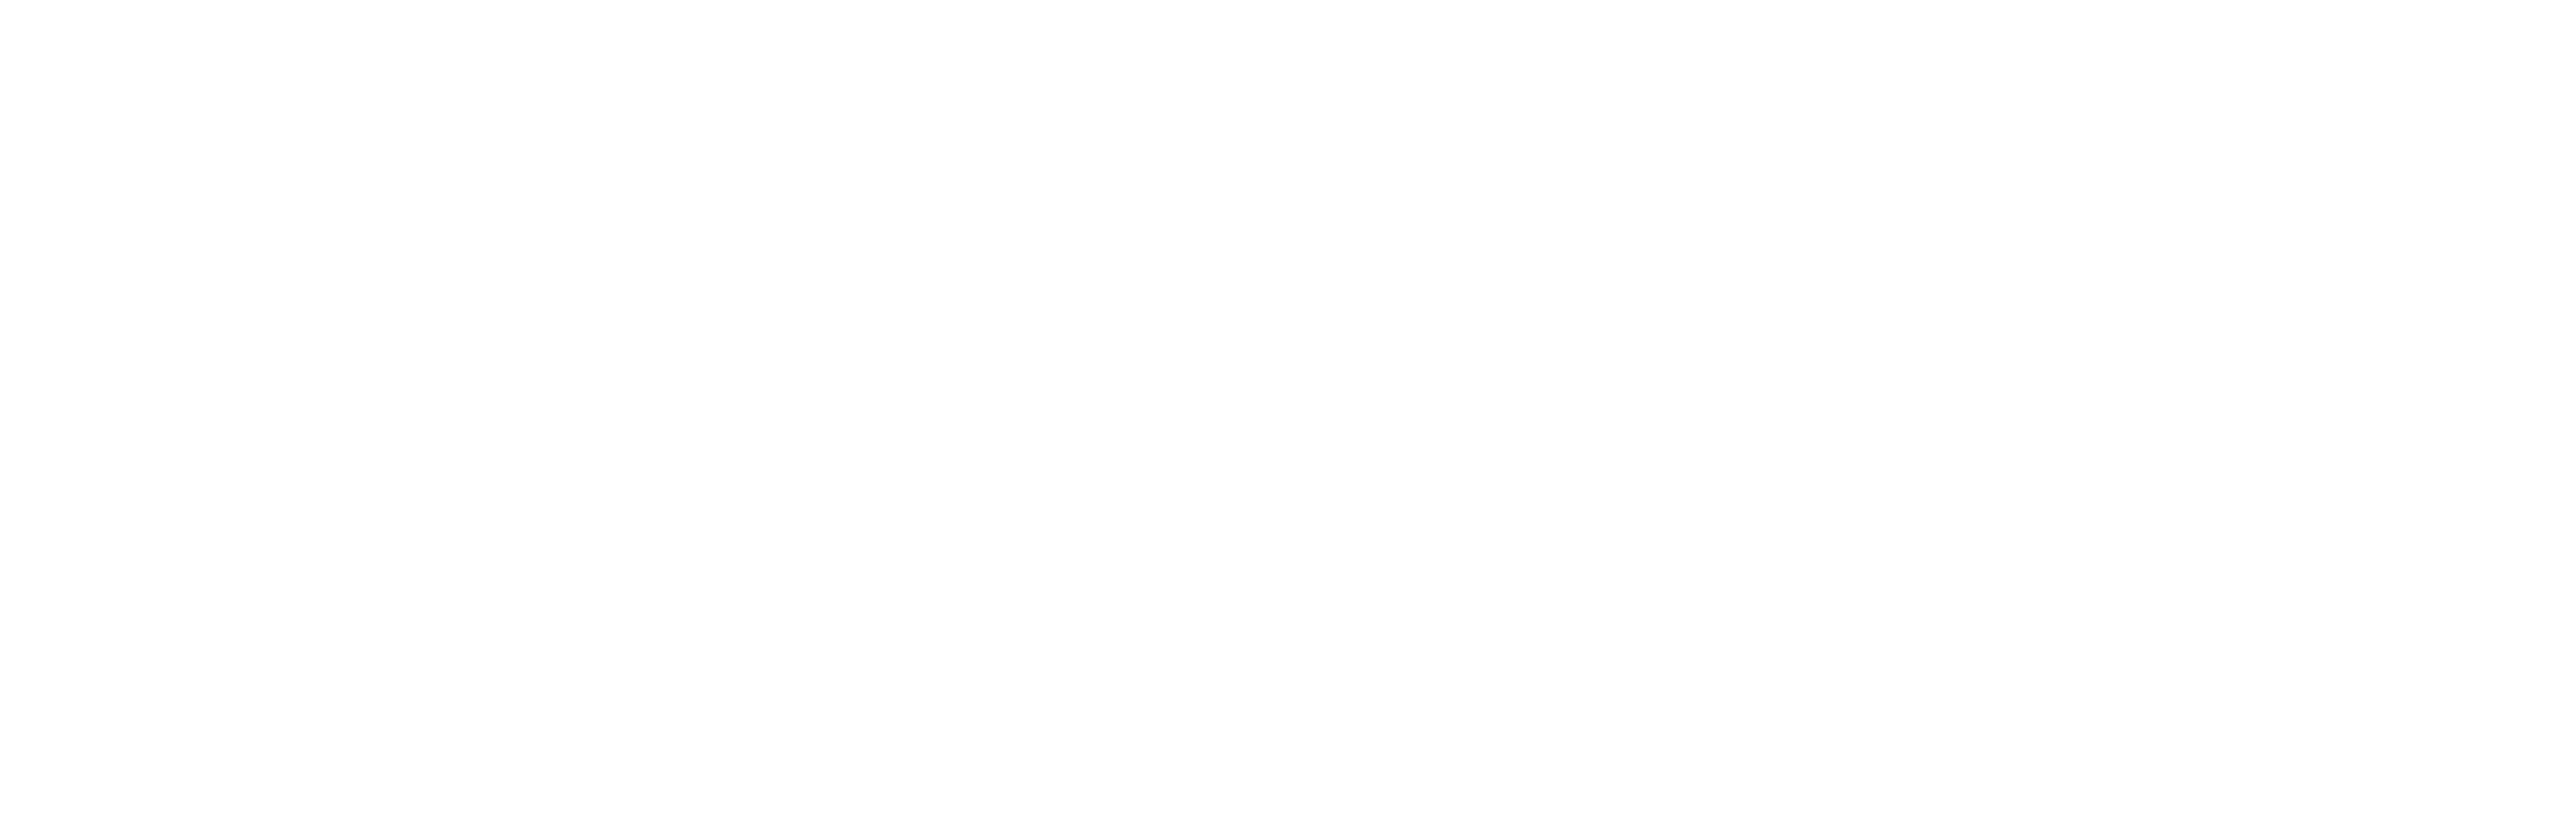 Delford Flowers & Gifts - Flower Delivery in River Edge, NJ